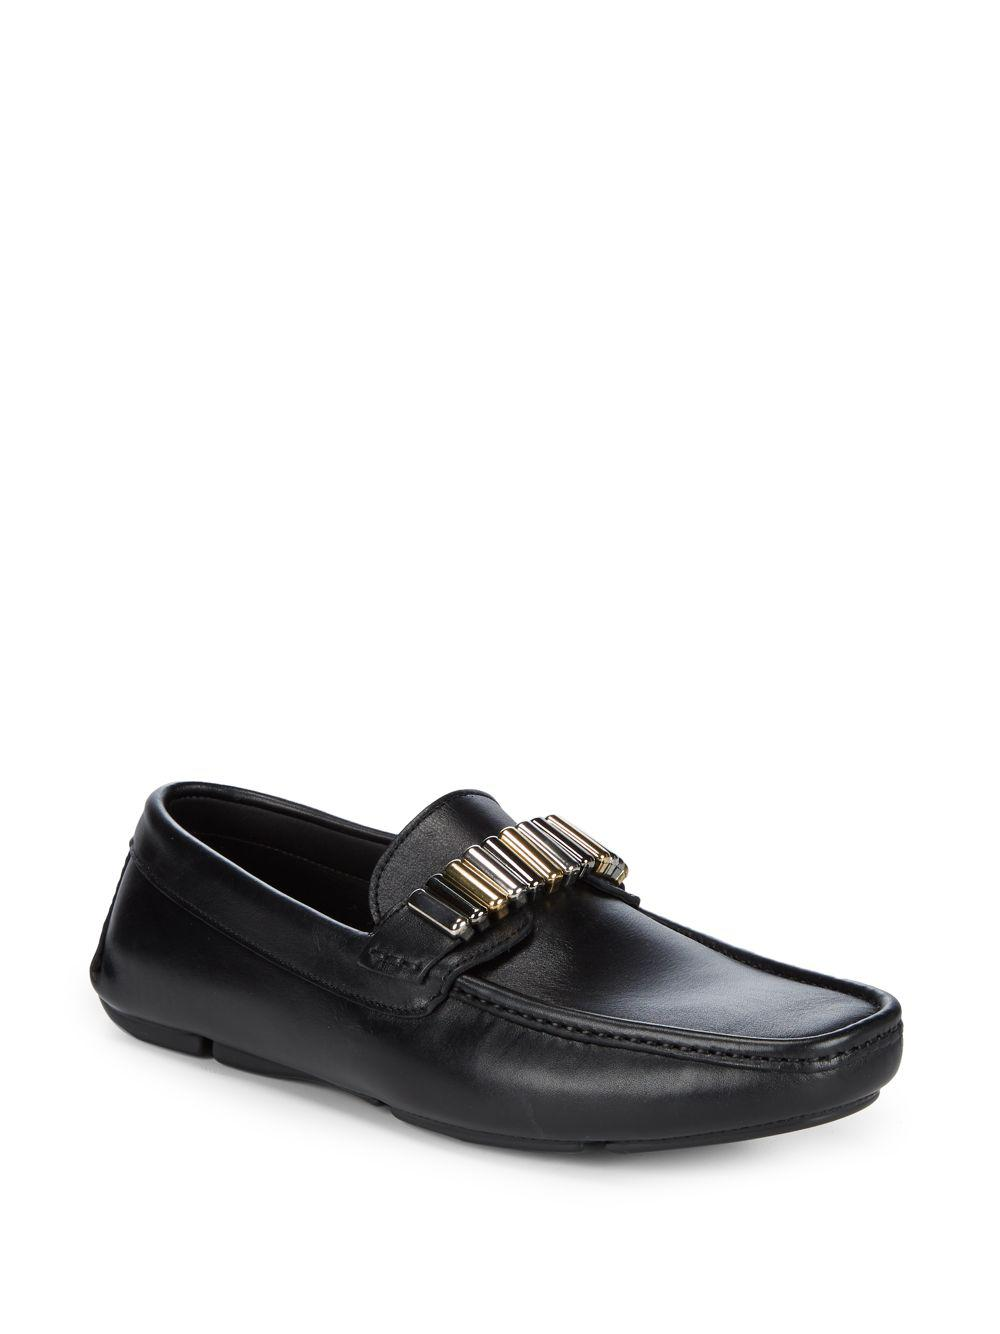 e50f9a7997 Versace Leather Hardware Driver Shoes in Black for Men - Save 26% - Lyst